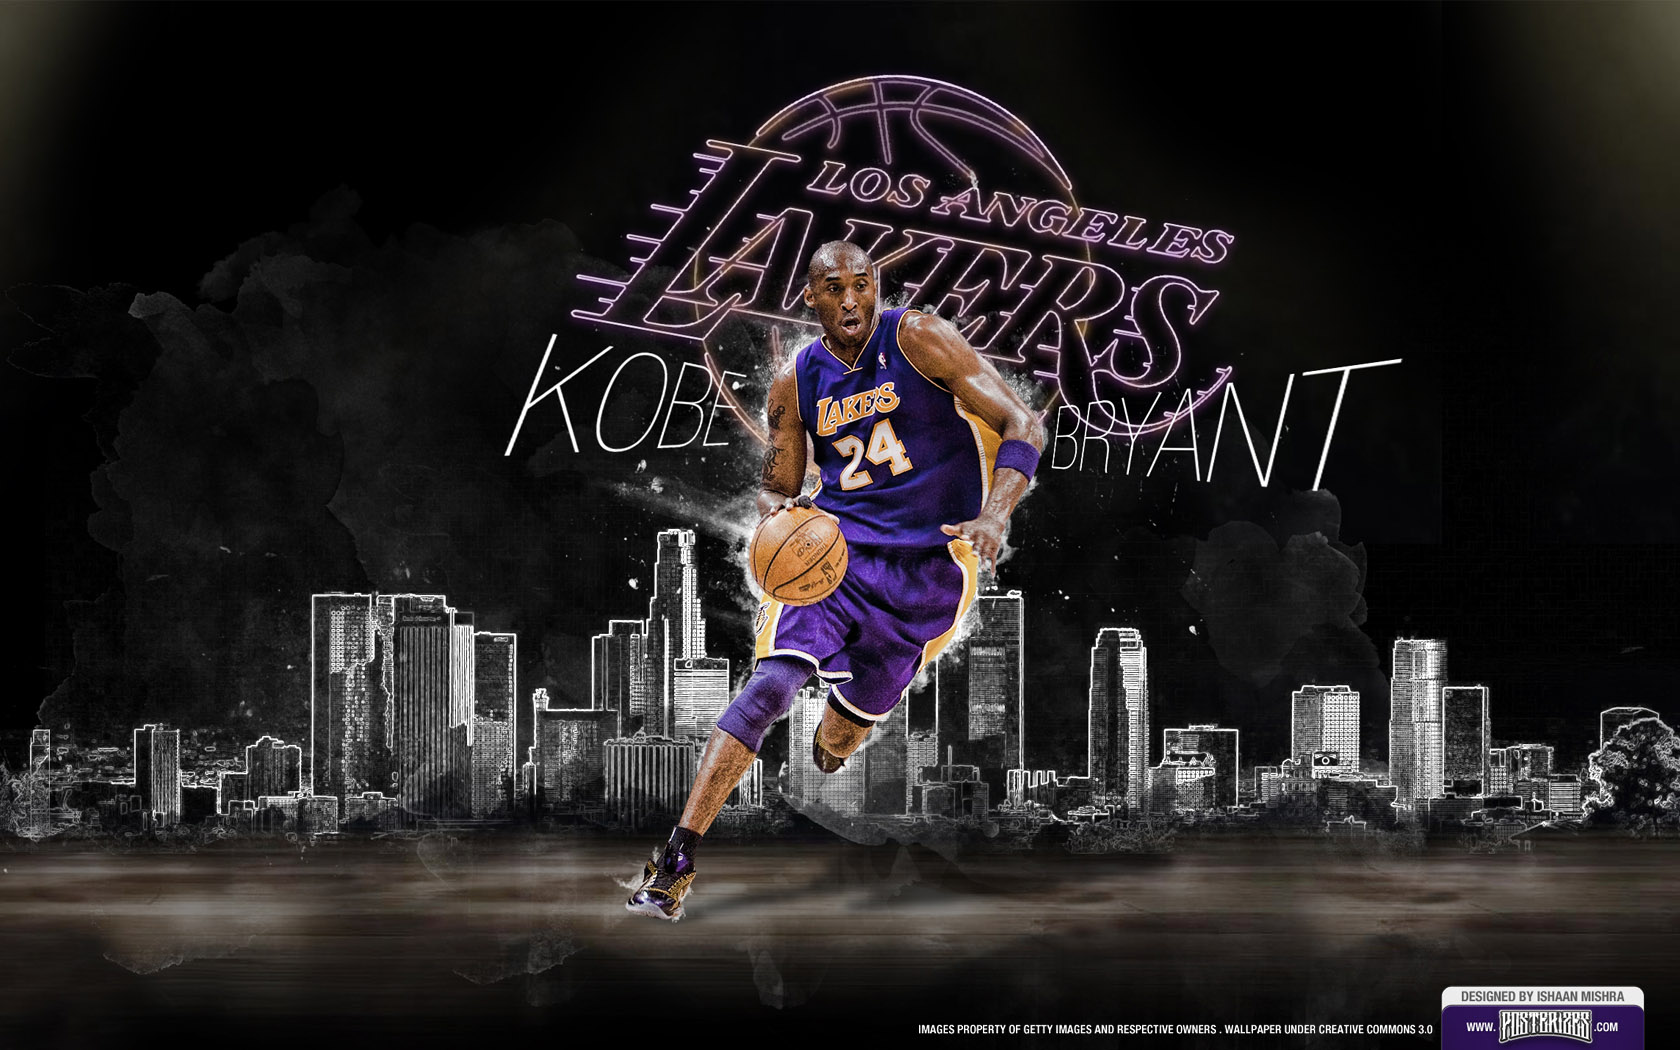 kobe bryant nice wallpapers - photo #13